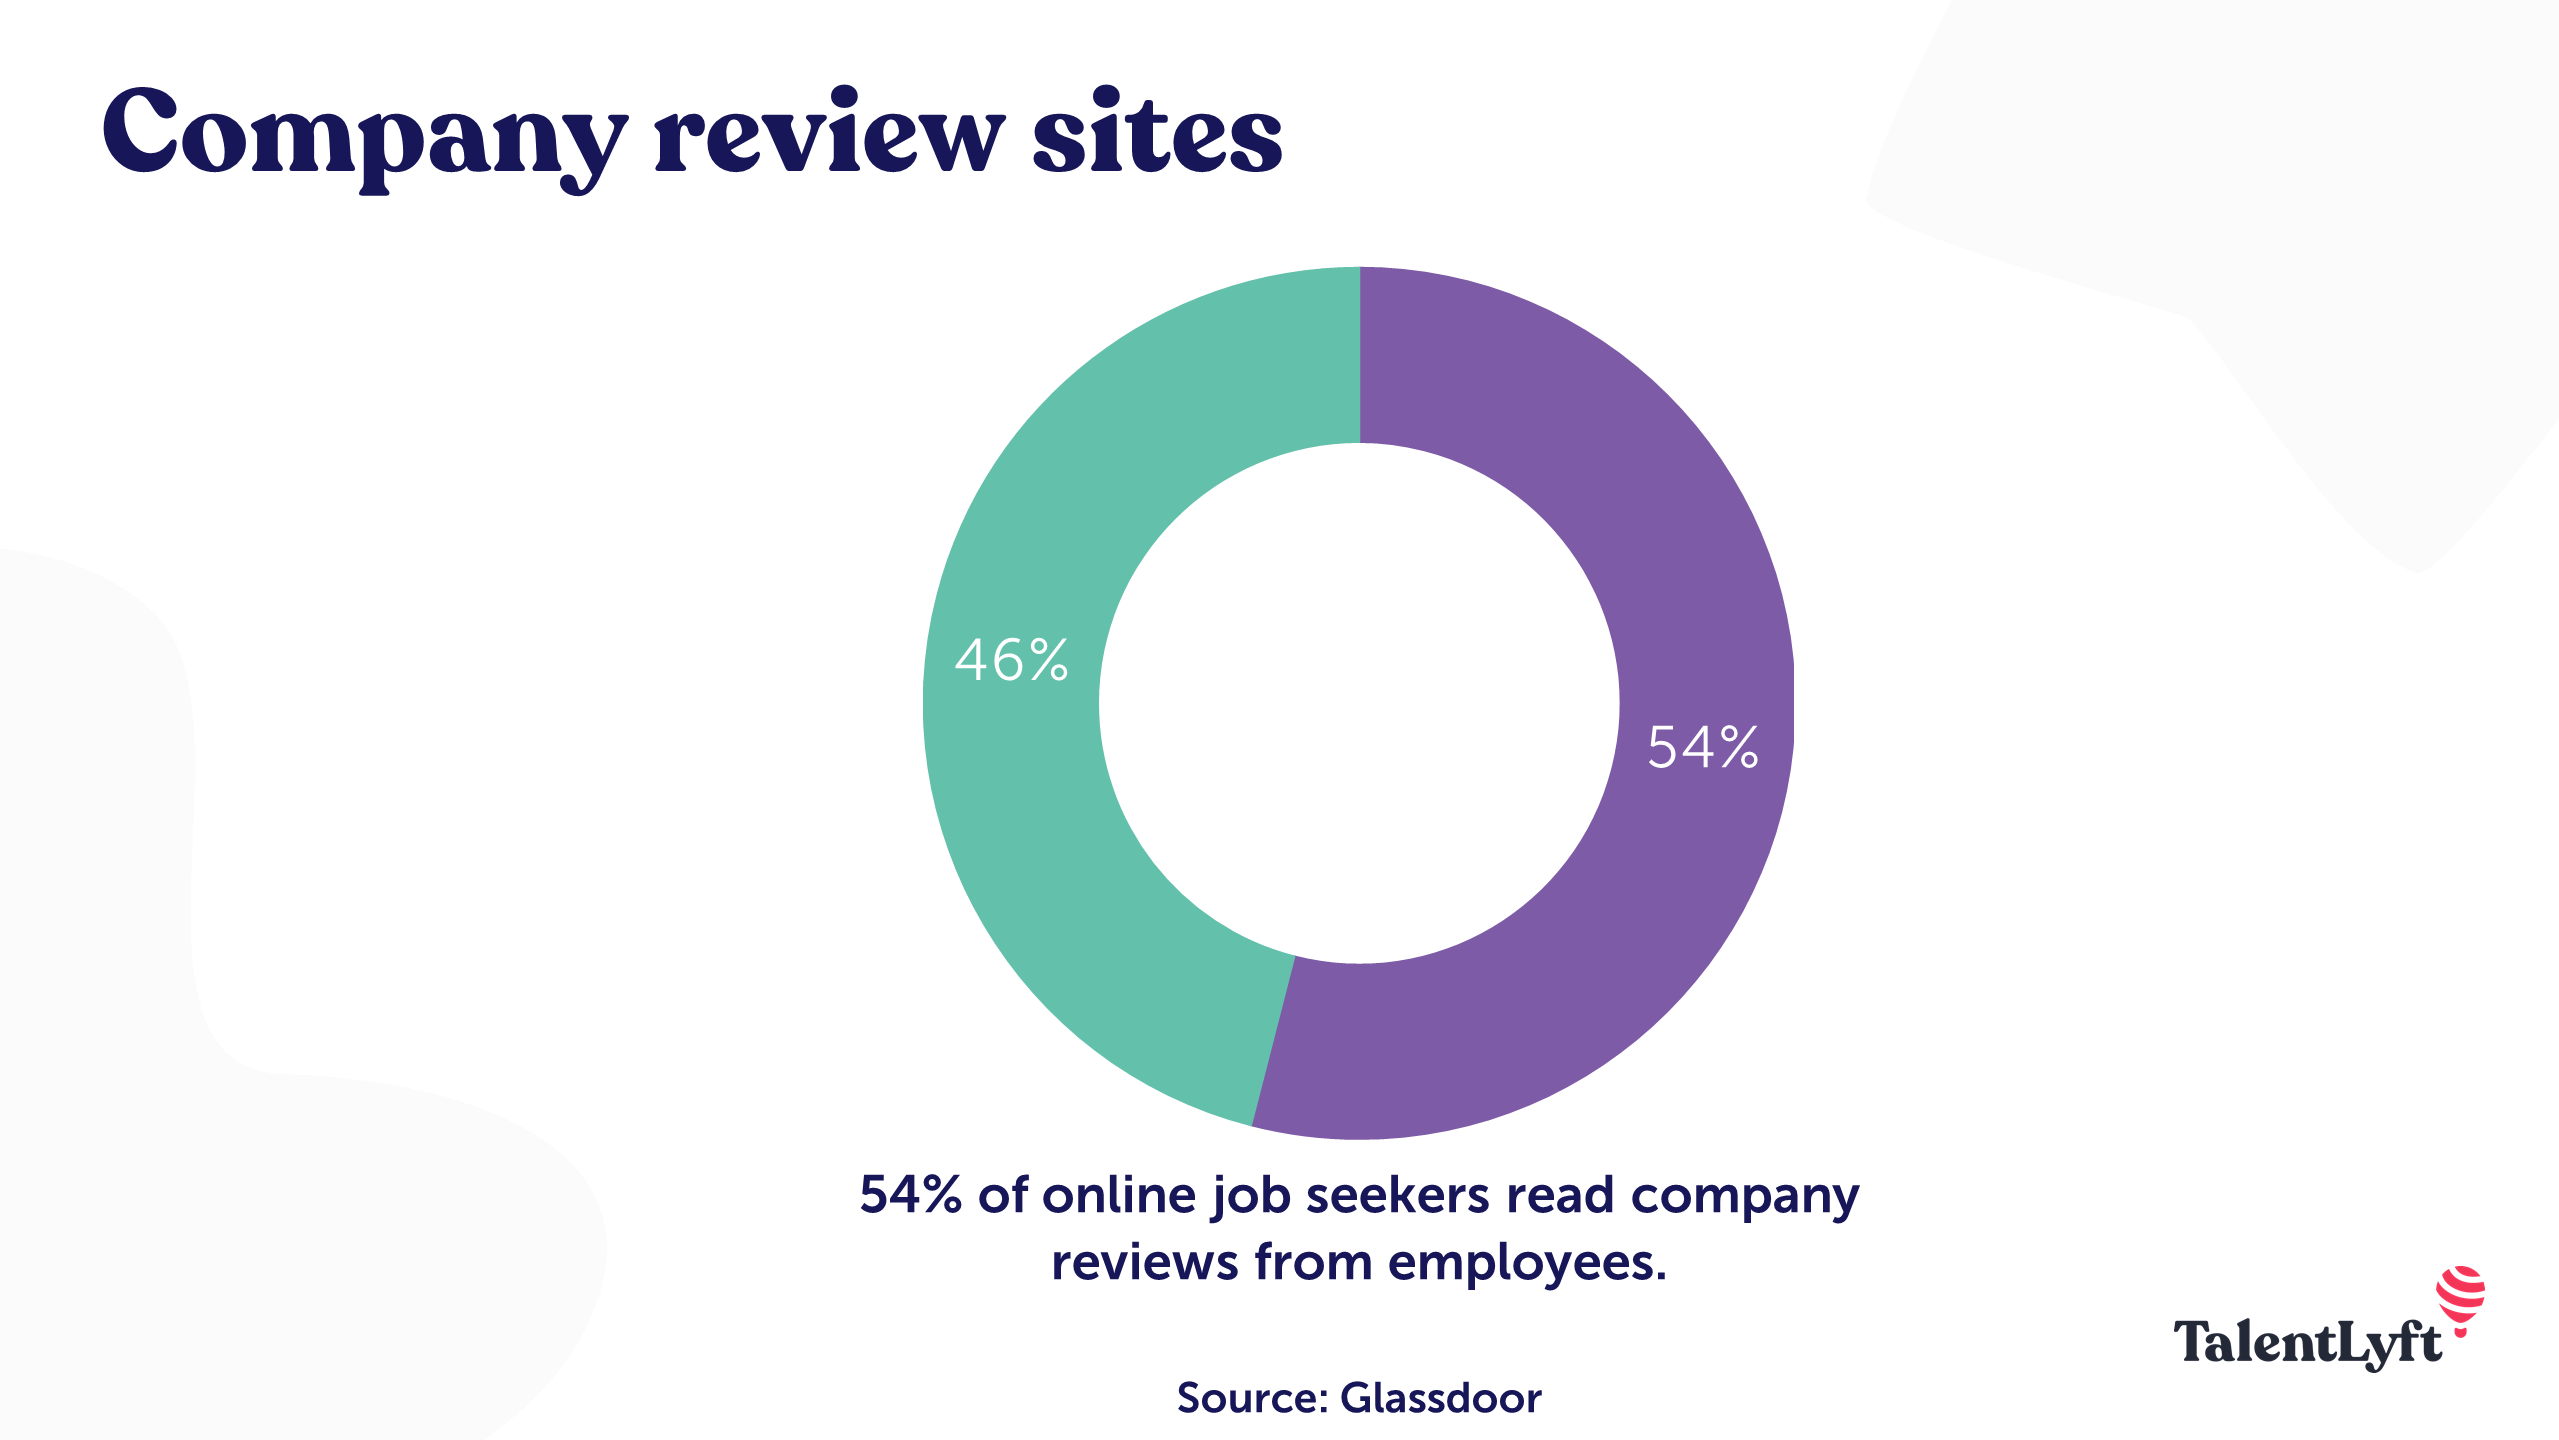 Company review sites